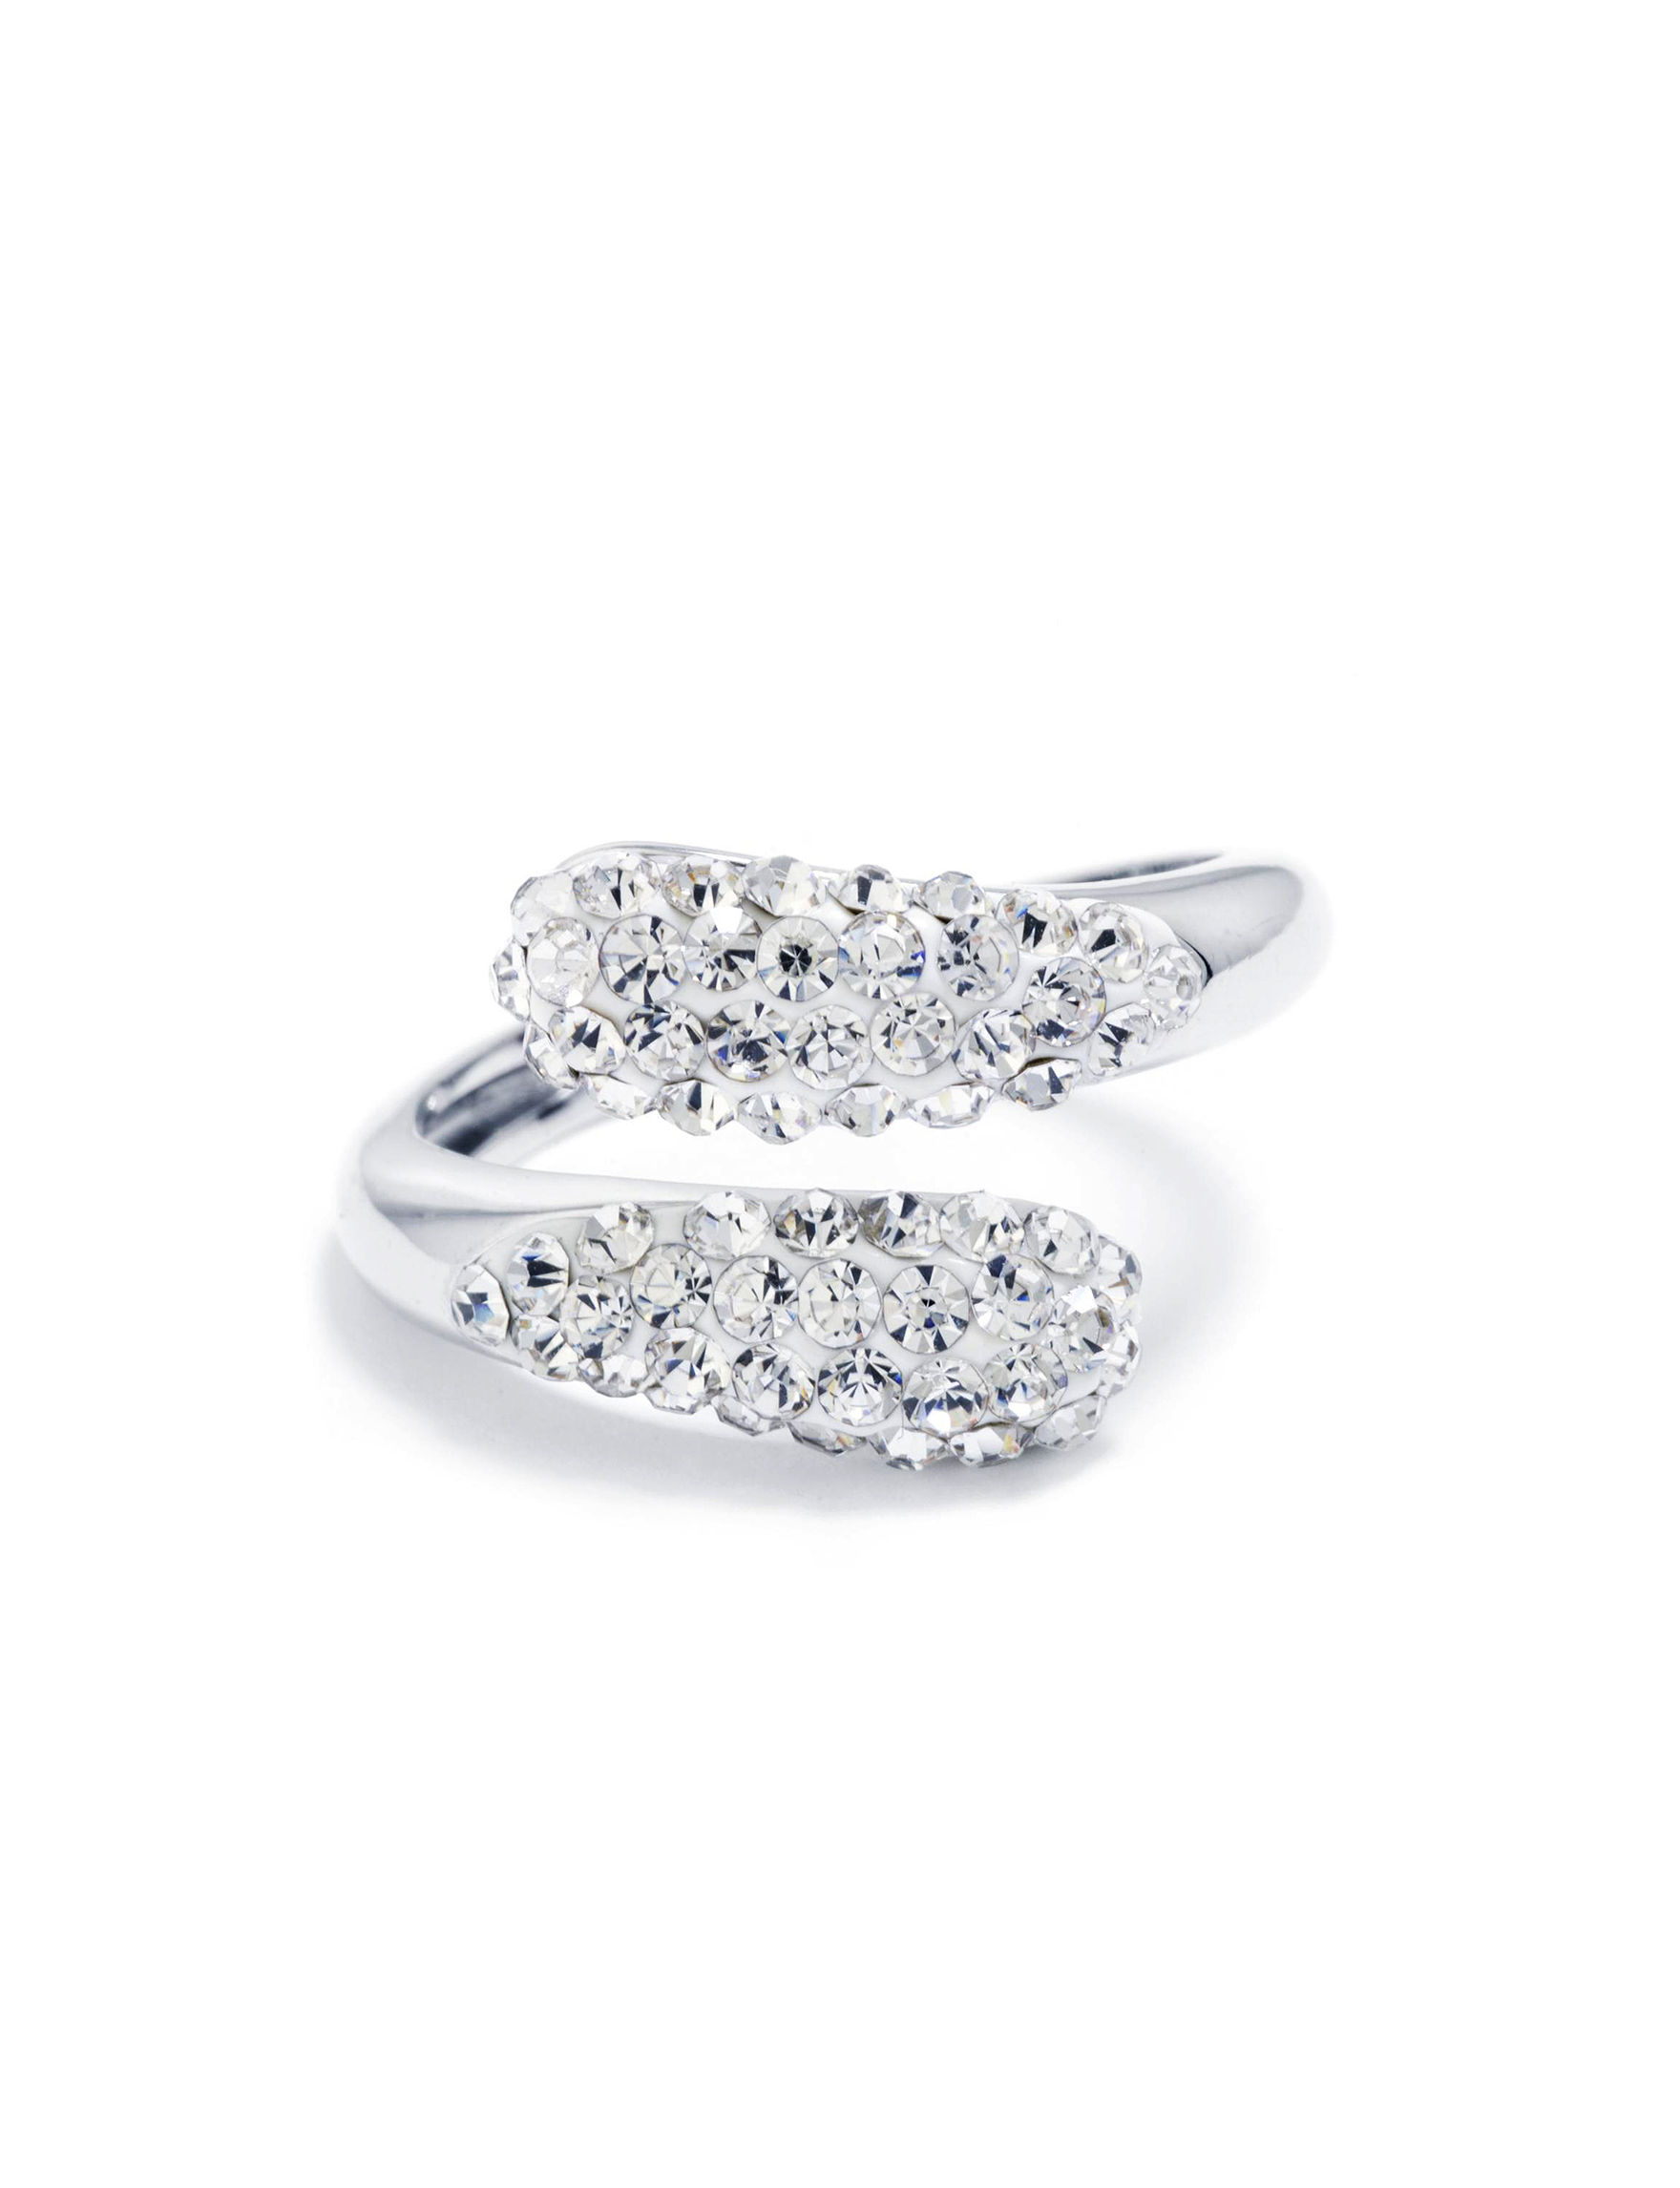 Athra Silver / Crystal Rings Fine Jewelry